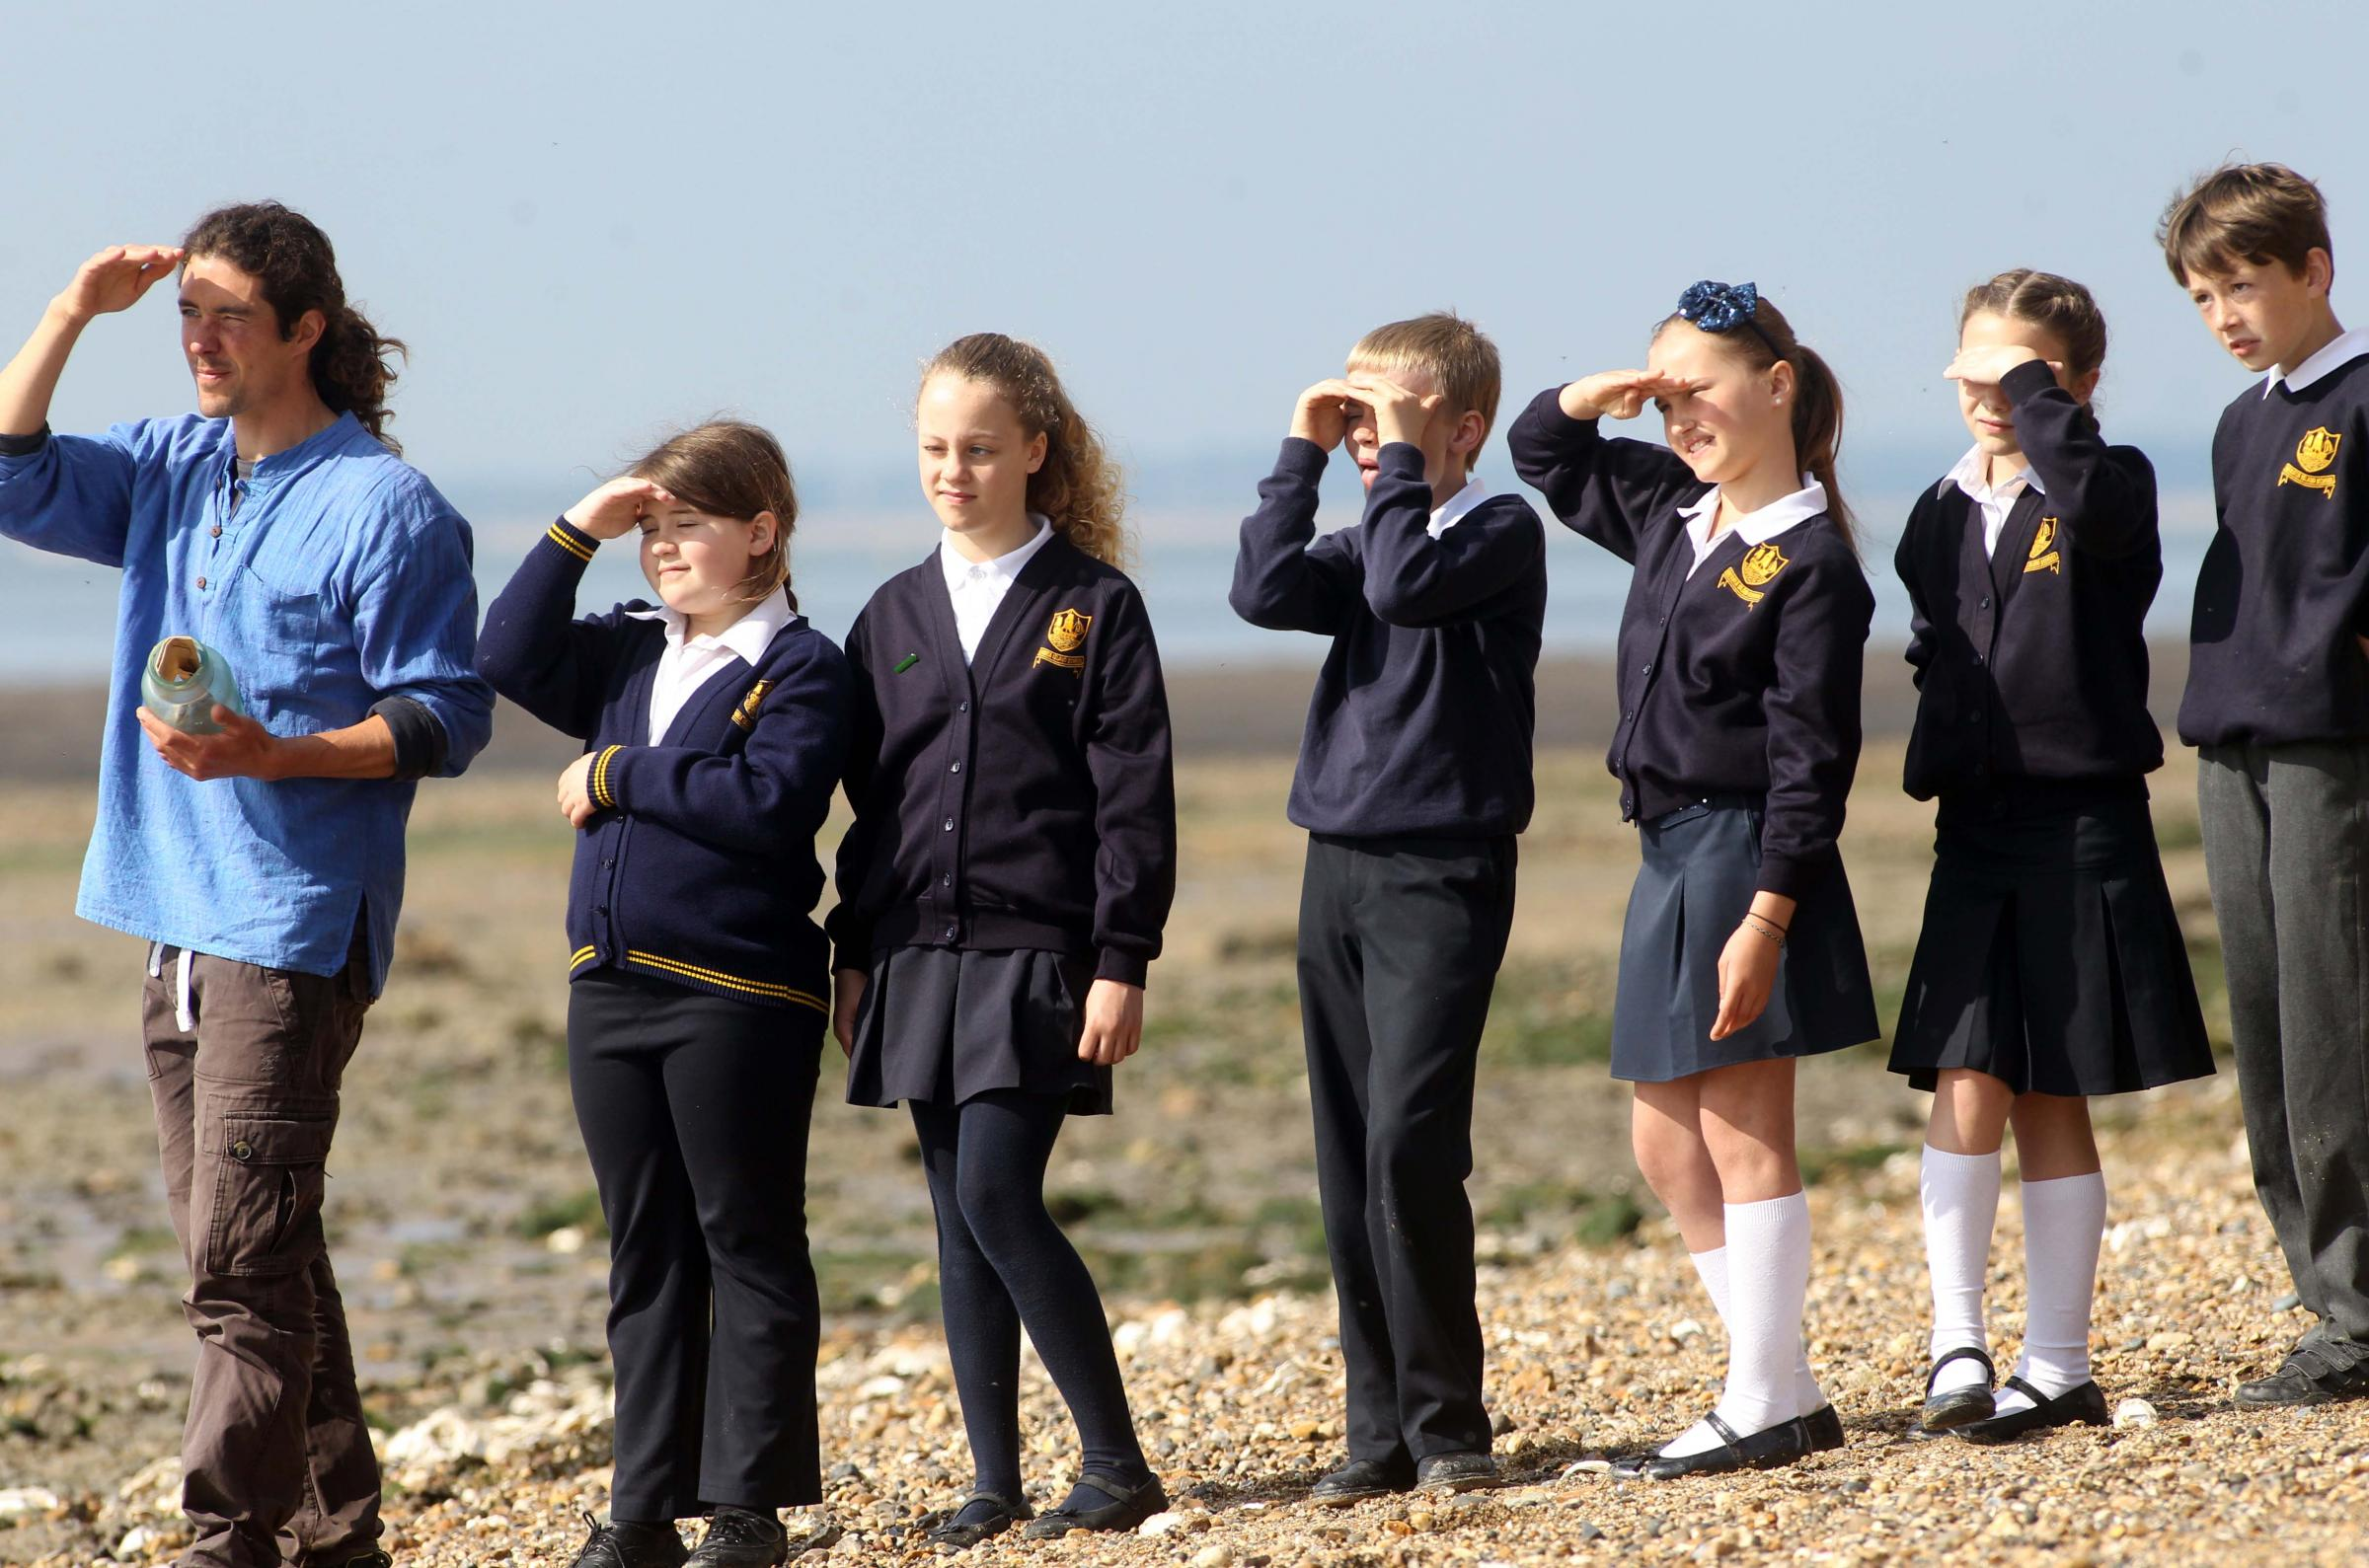 Here it comes – Charlotte Lake, Ben Rumble, Alannah Murrell, Amber Jones, Cameron Hope and Zoe Clegg watch the flypast